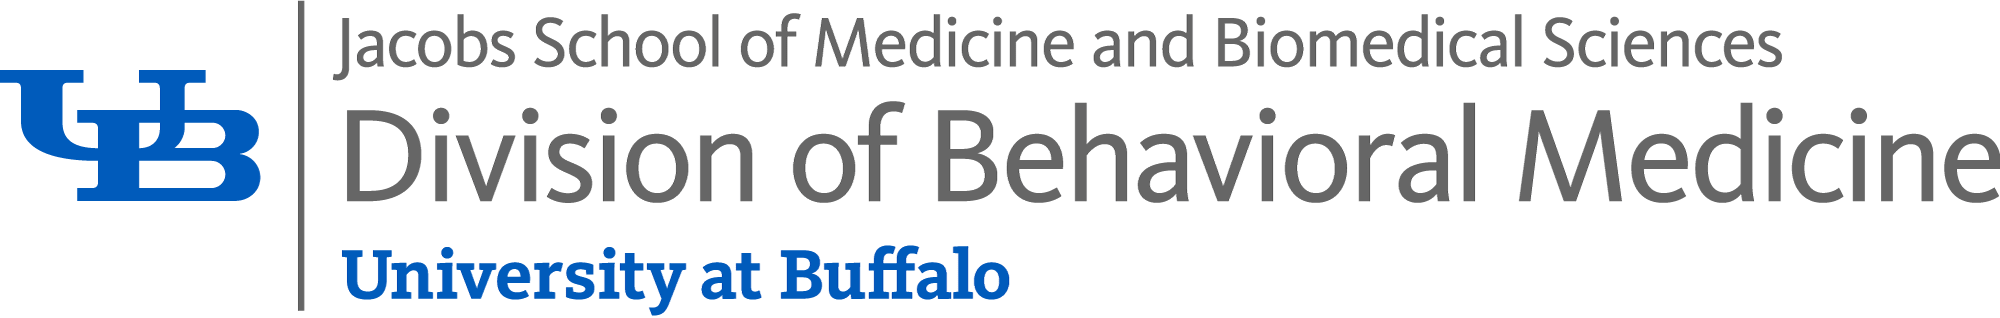 Division of Behavioral Medicine, University of Buffalo